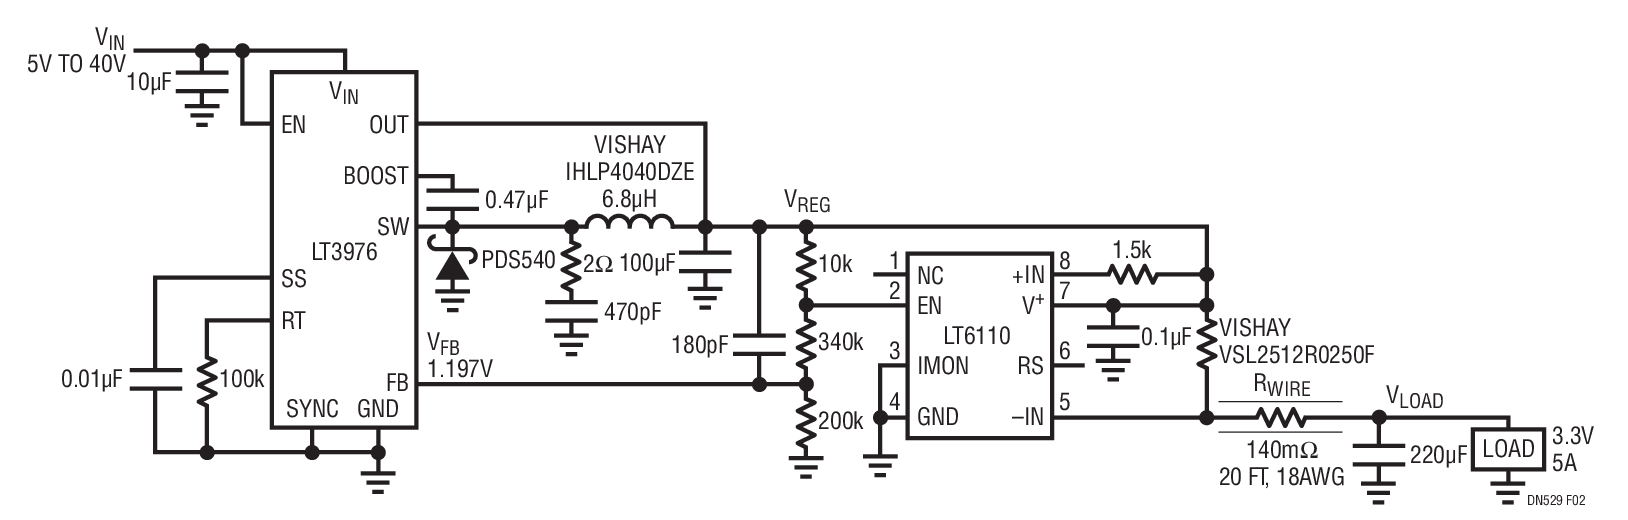 medium resolution of control the voltage of a remote load over any length of copper wire rh analog com generator voltage regulator wiring diagram regulator rectifier wiring